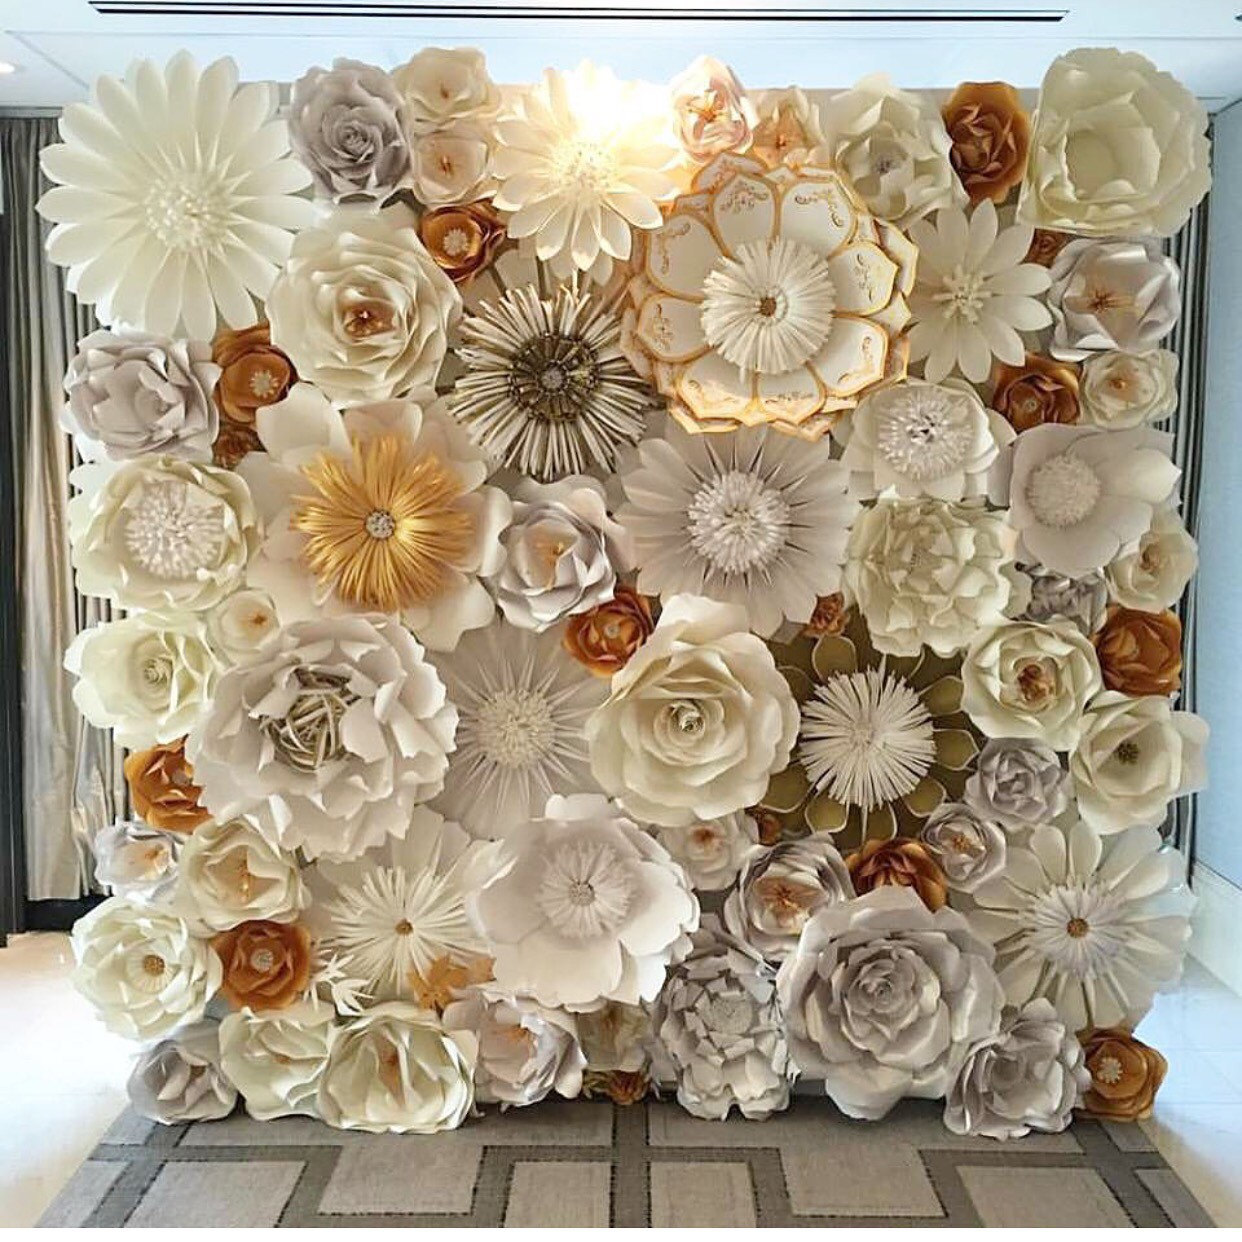 Wedding planning archives kamaara wedding videos create paper flower bouquets or arrange flowers yourself to save some cash you can get flowers cheaply by heading down to the flower market or even solutioingenieria Image collections